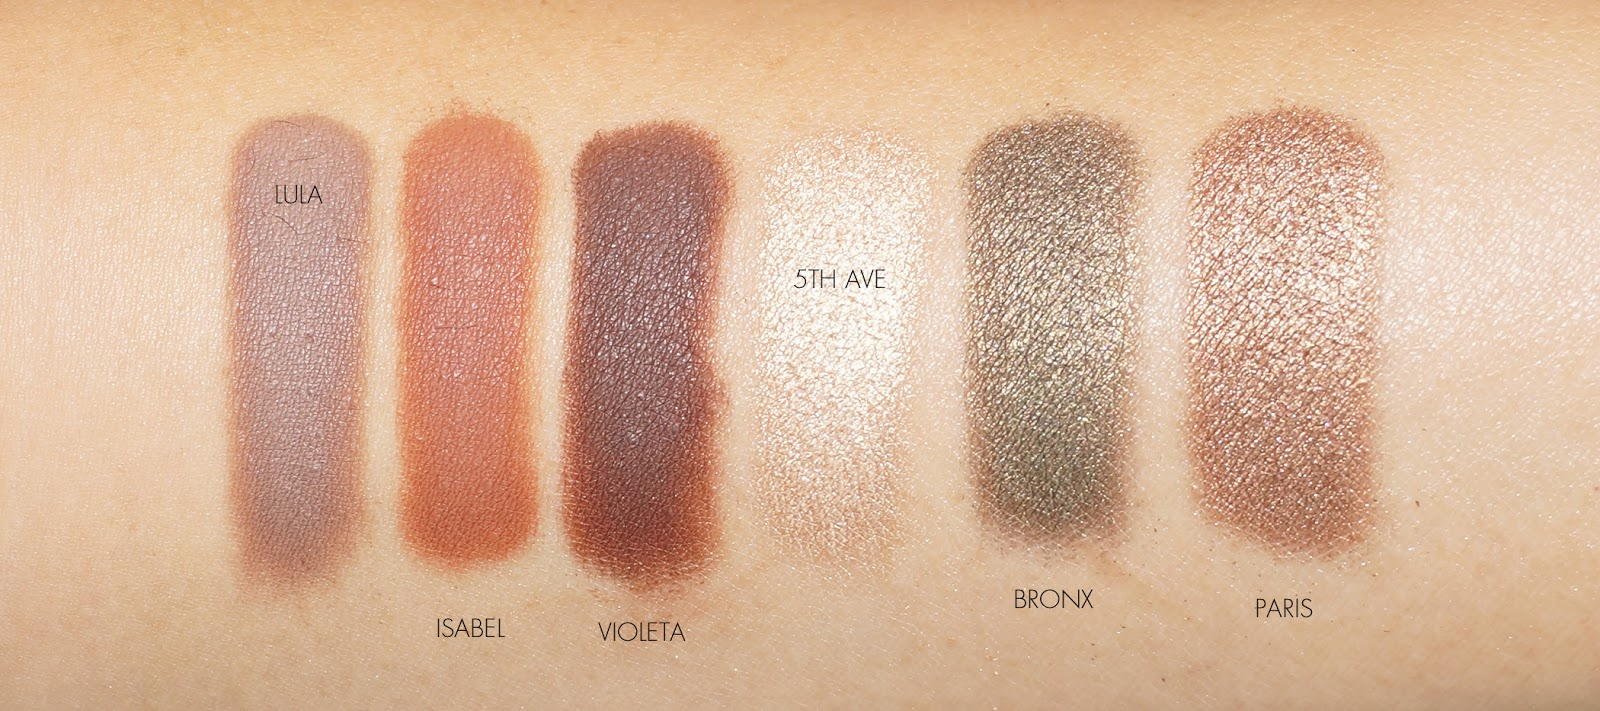 The Beauty Look Book - Anastasia Beverly Hills Master Palette by Mario Swatches